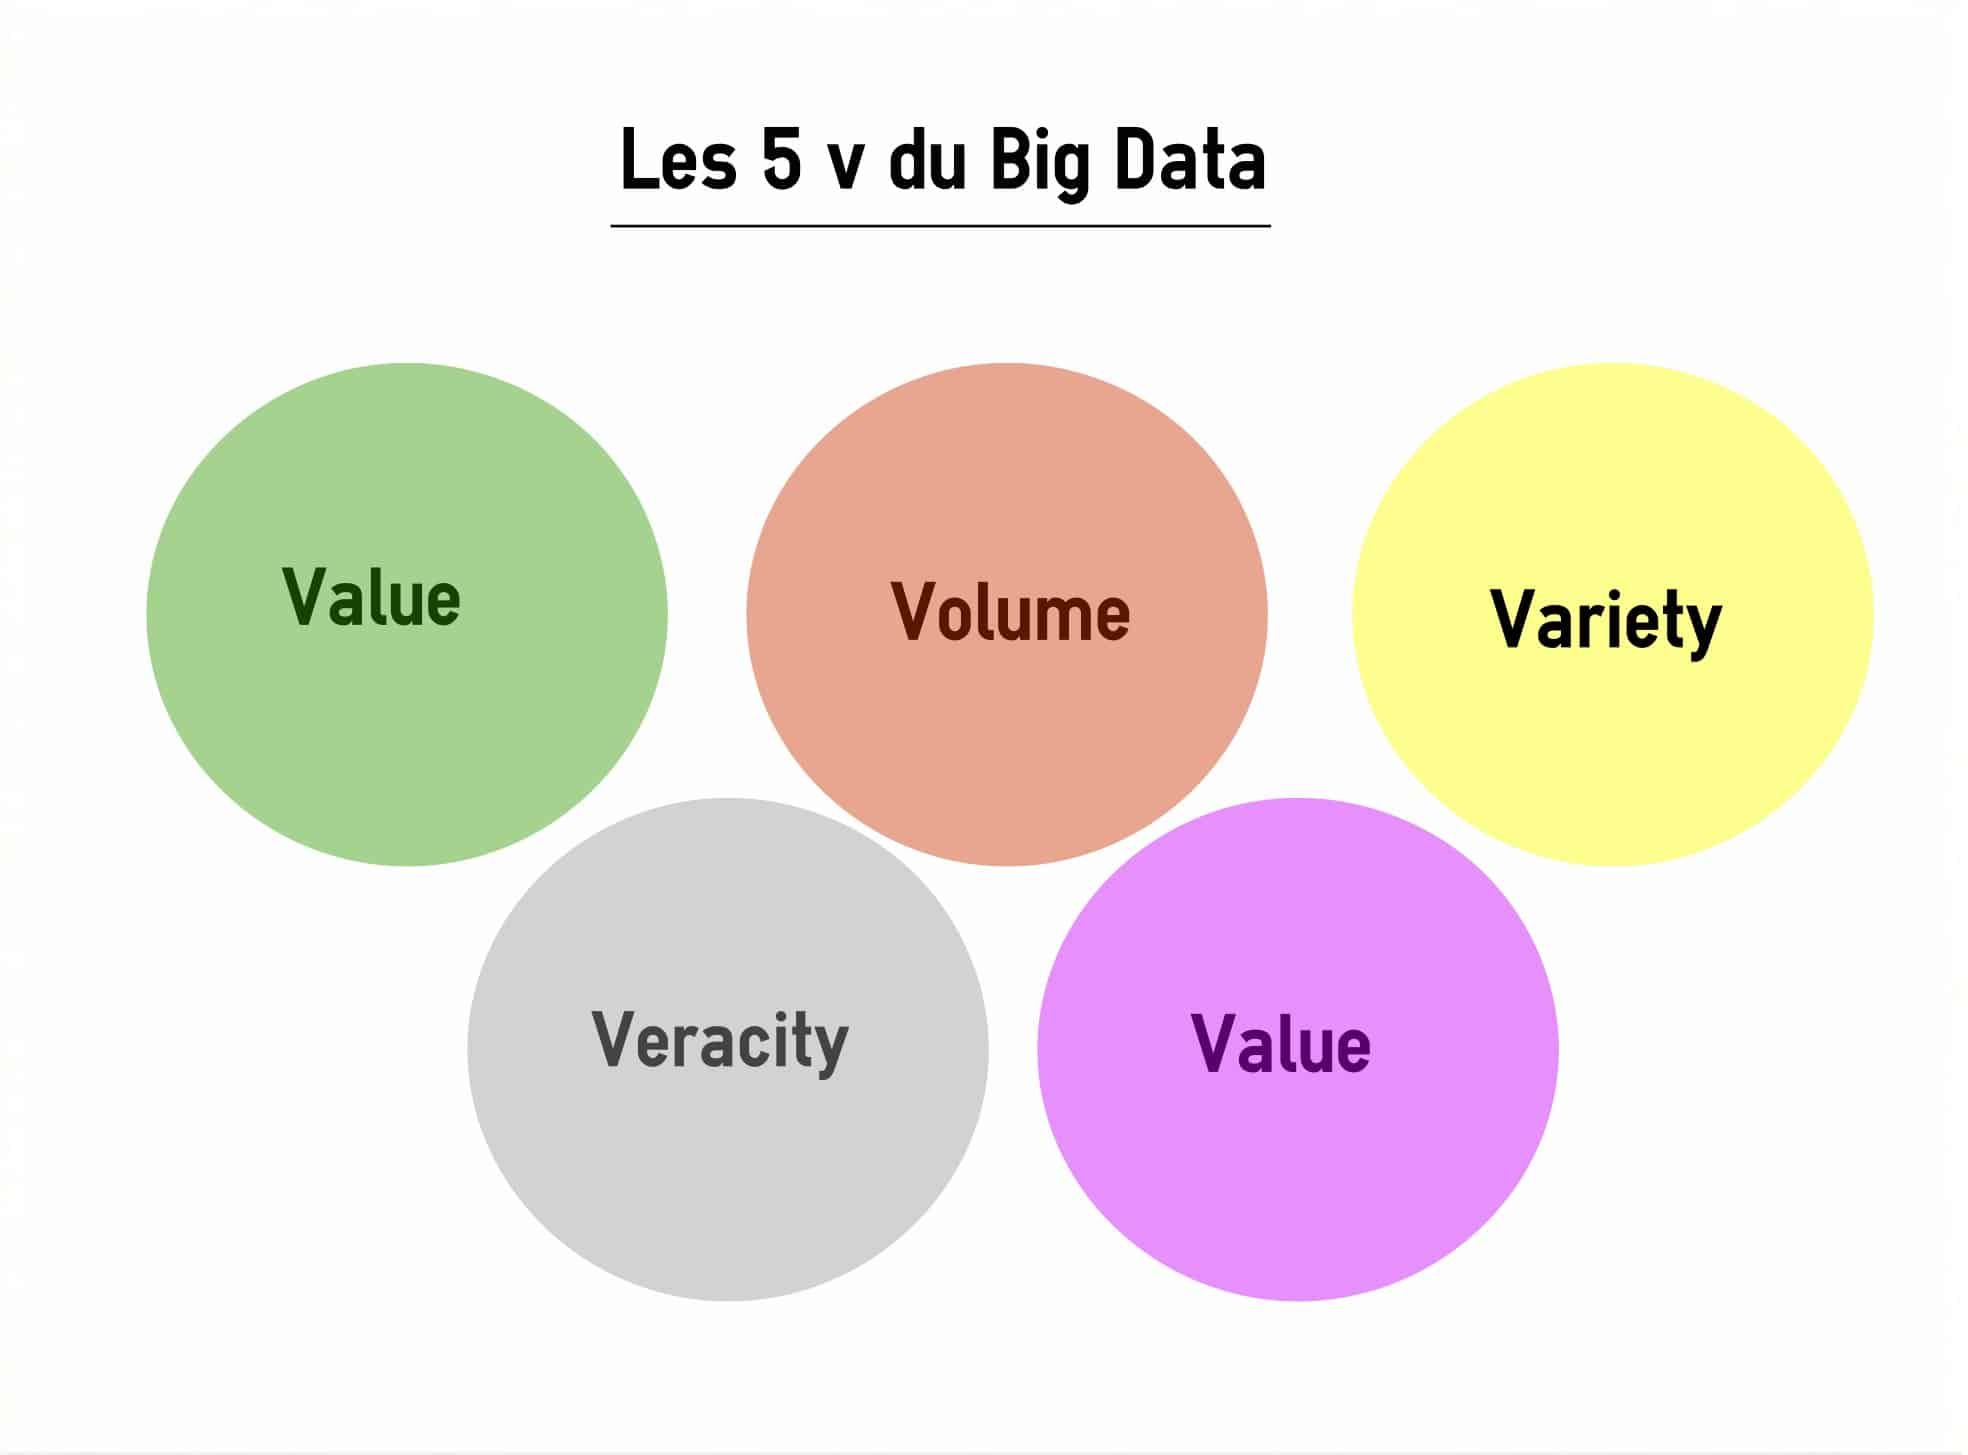 LES 5 V DU BIG DATA